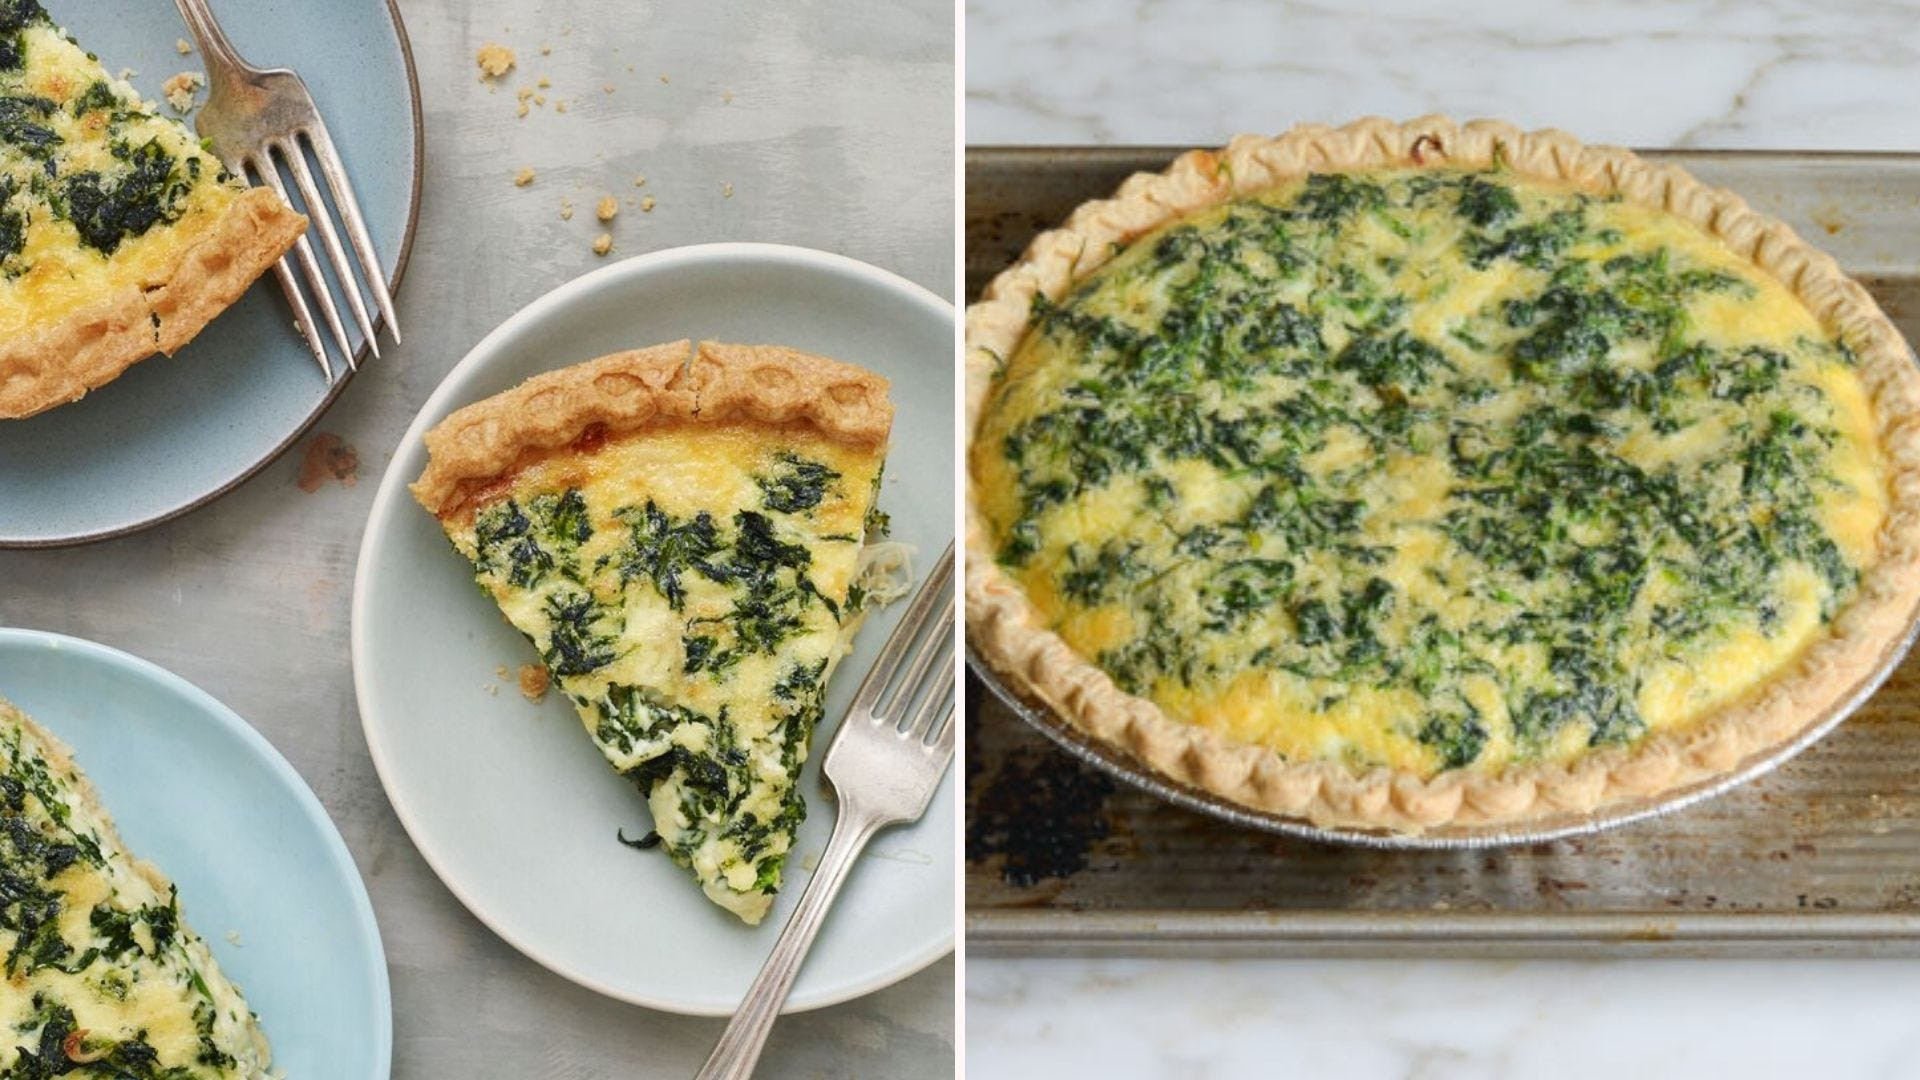 Two images: The left features three plates with slices of spinach and cheese quiche and the right image is of a full quiche fresh out of the oven.